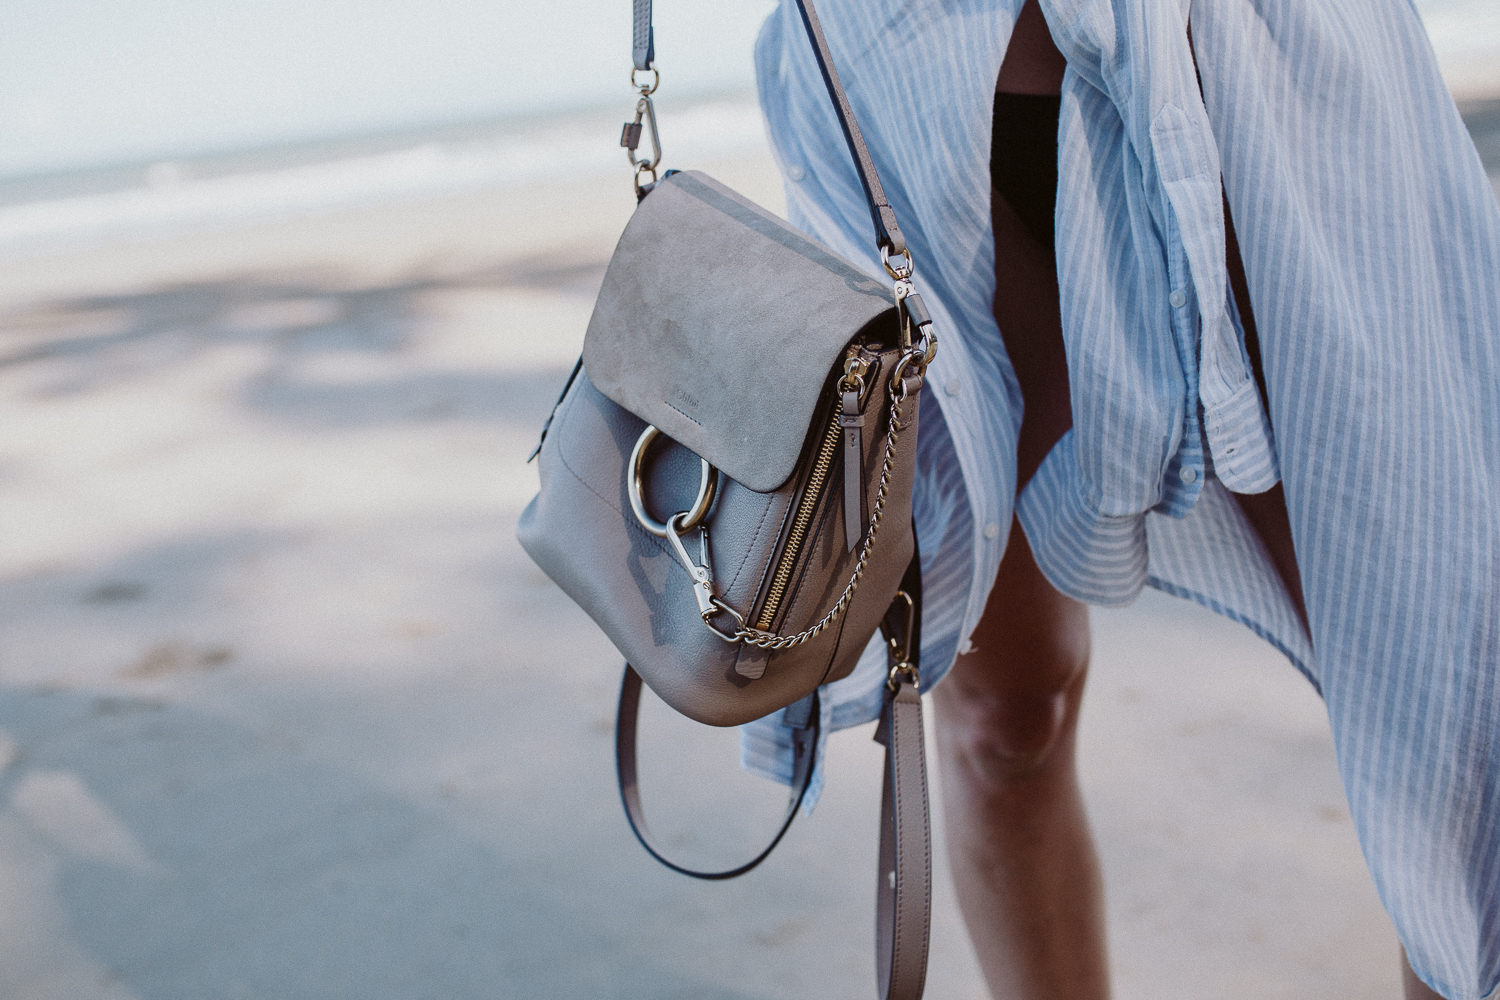 Chloé Faye backpack small, motty gray | Bikinis & Passports